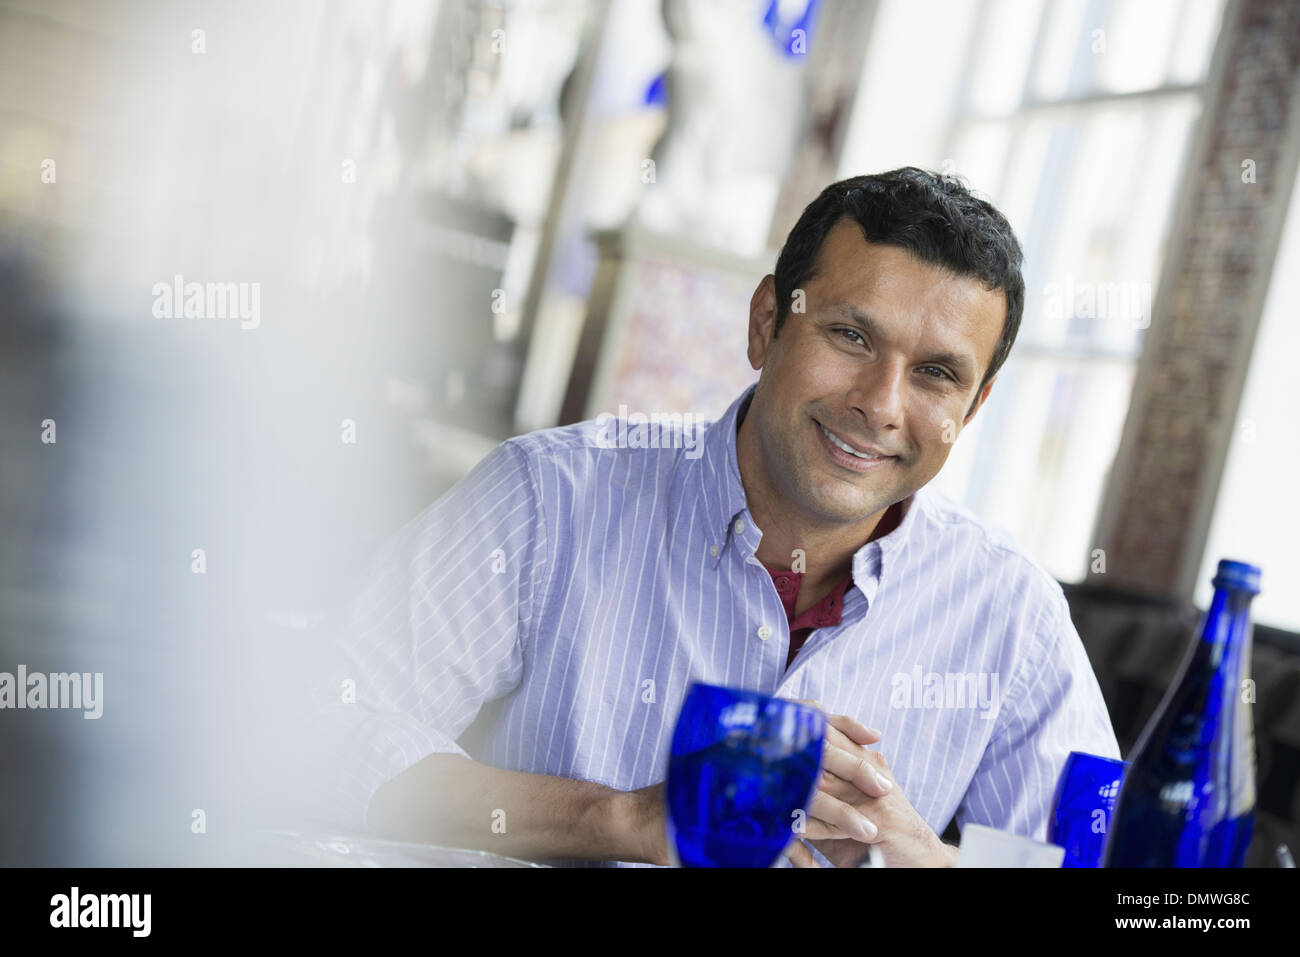 A cafe interior. A man seated at a table. - Stock Image